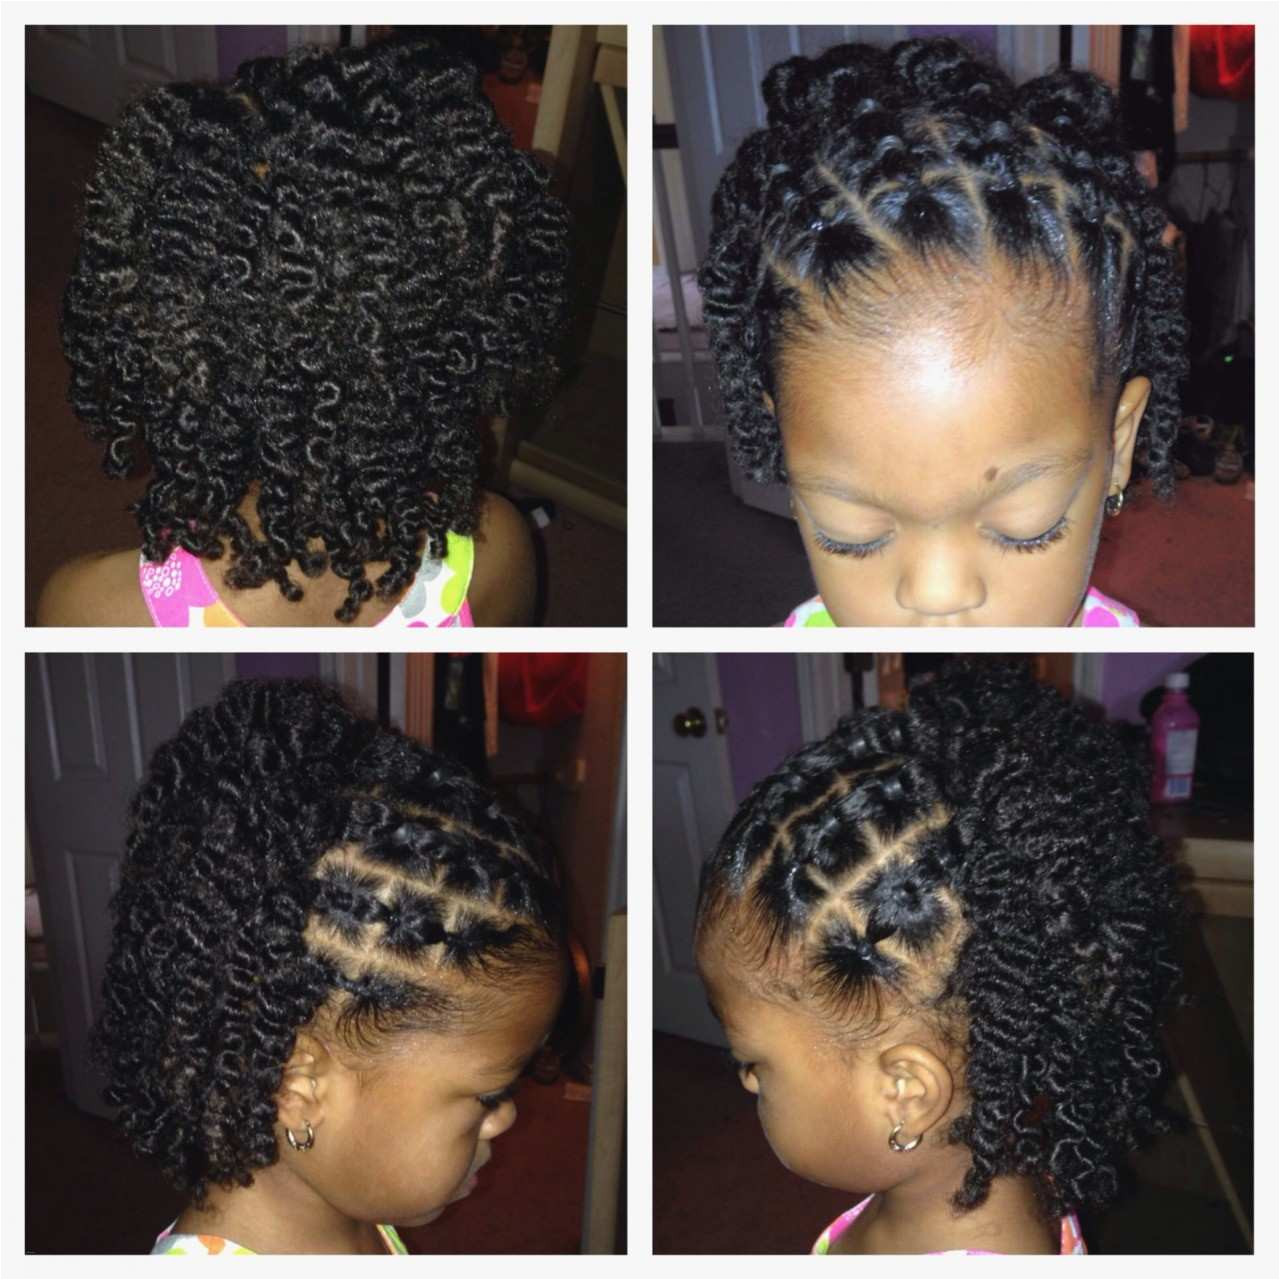 Black Girl Natural Hairstyles Elegant 77 Hairstyles for Black Little Girls Unique Natural Hair Styles for